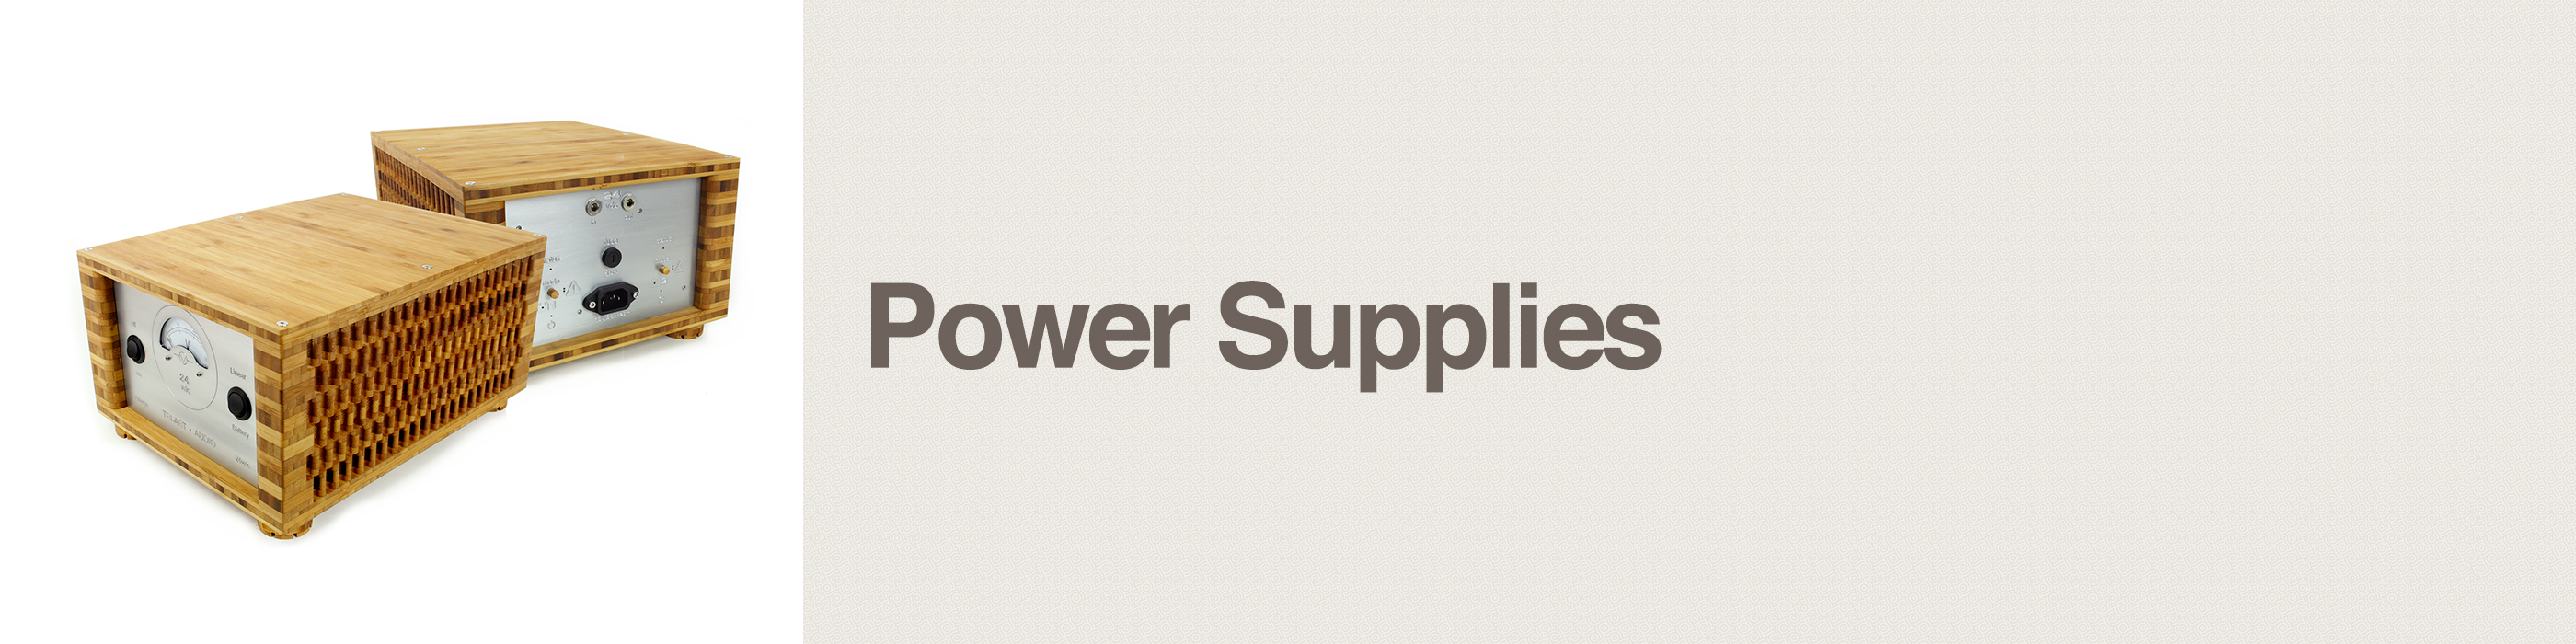 power supplies header